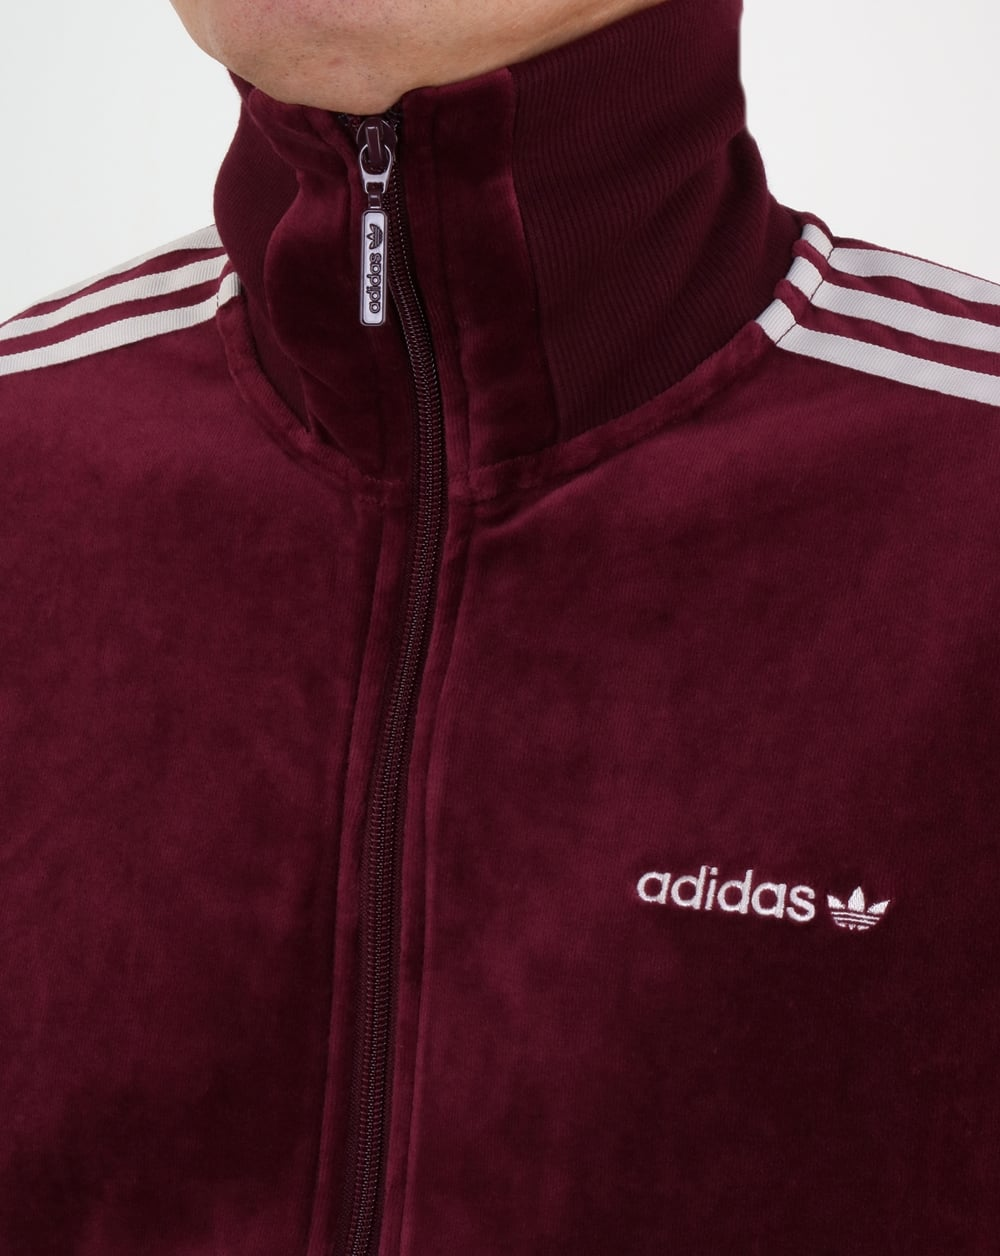 adidas originals clr84 track top maroon tracksuit jacket. Black Bedroom Furniture Sets. Home Design Ideas